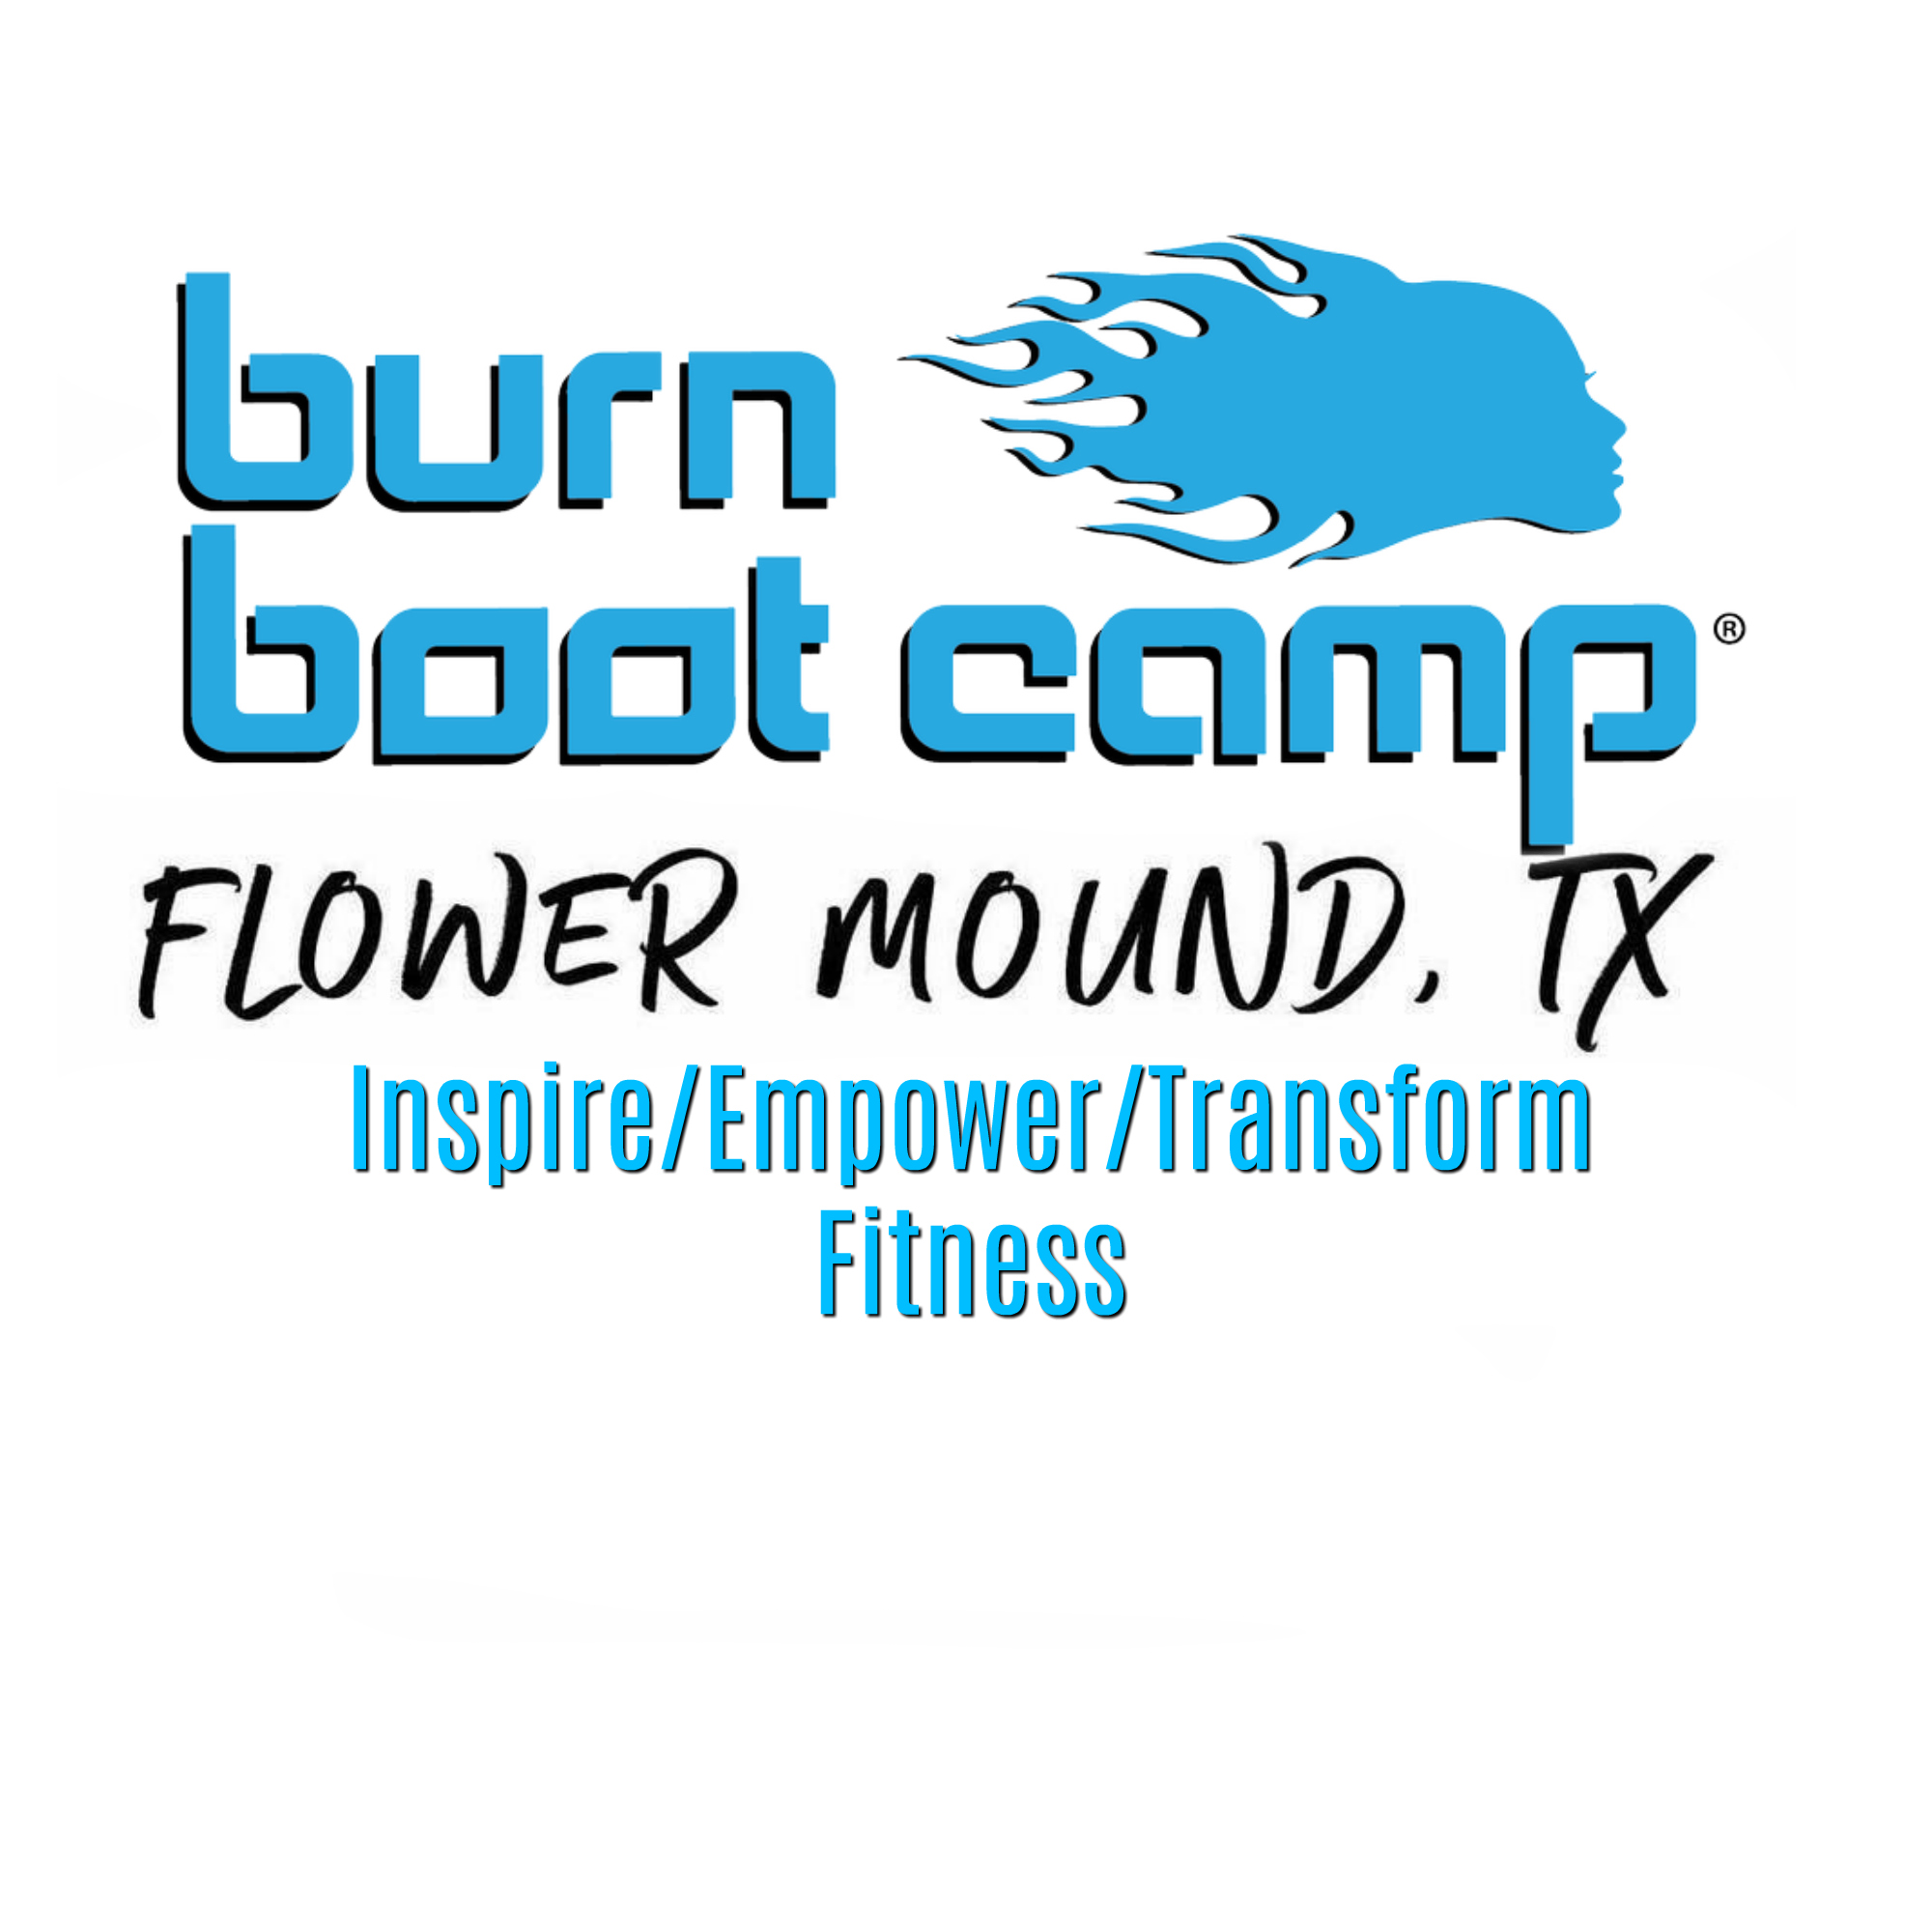 burn-boot-camp-flo-mo-logo